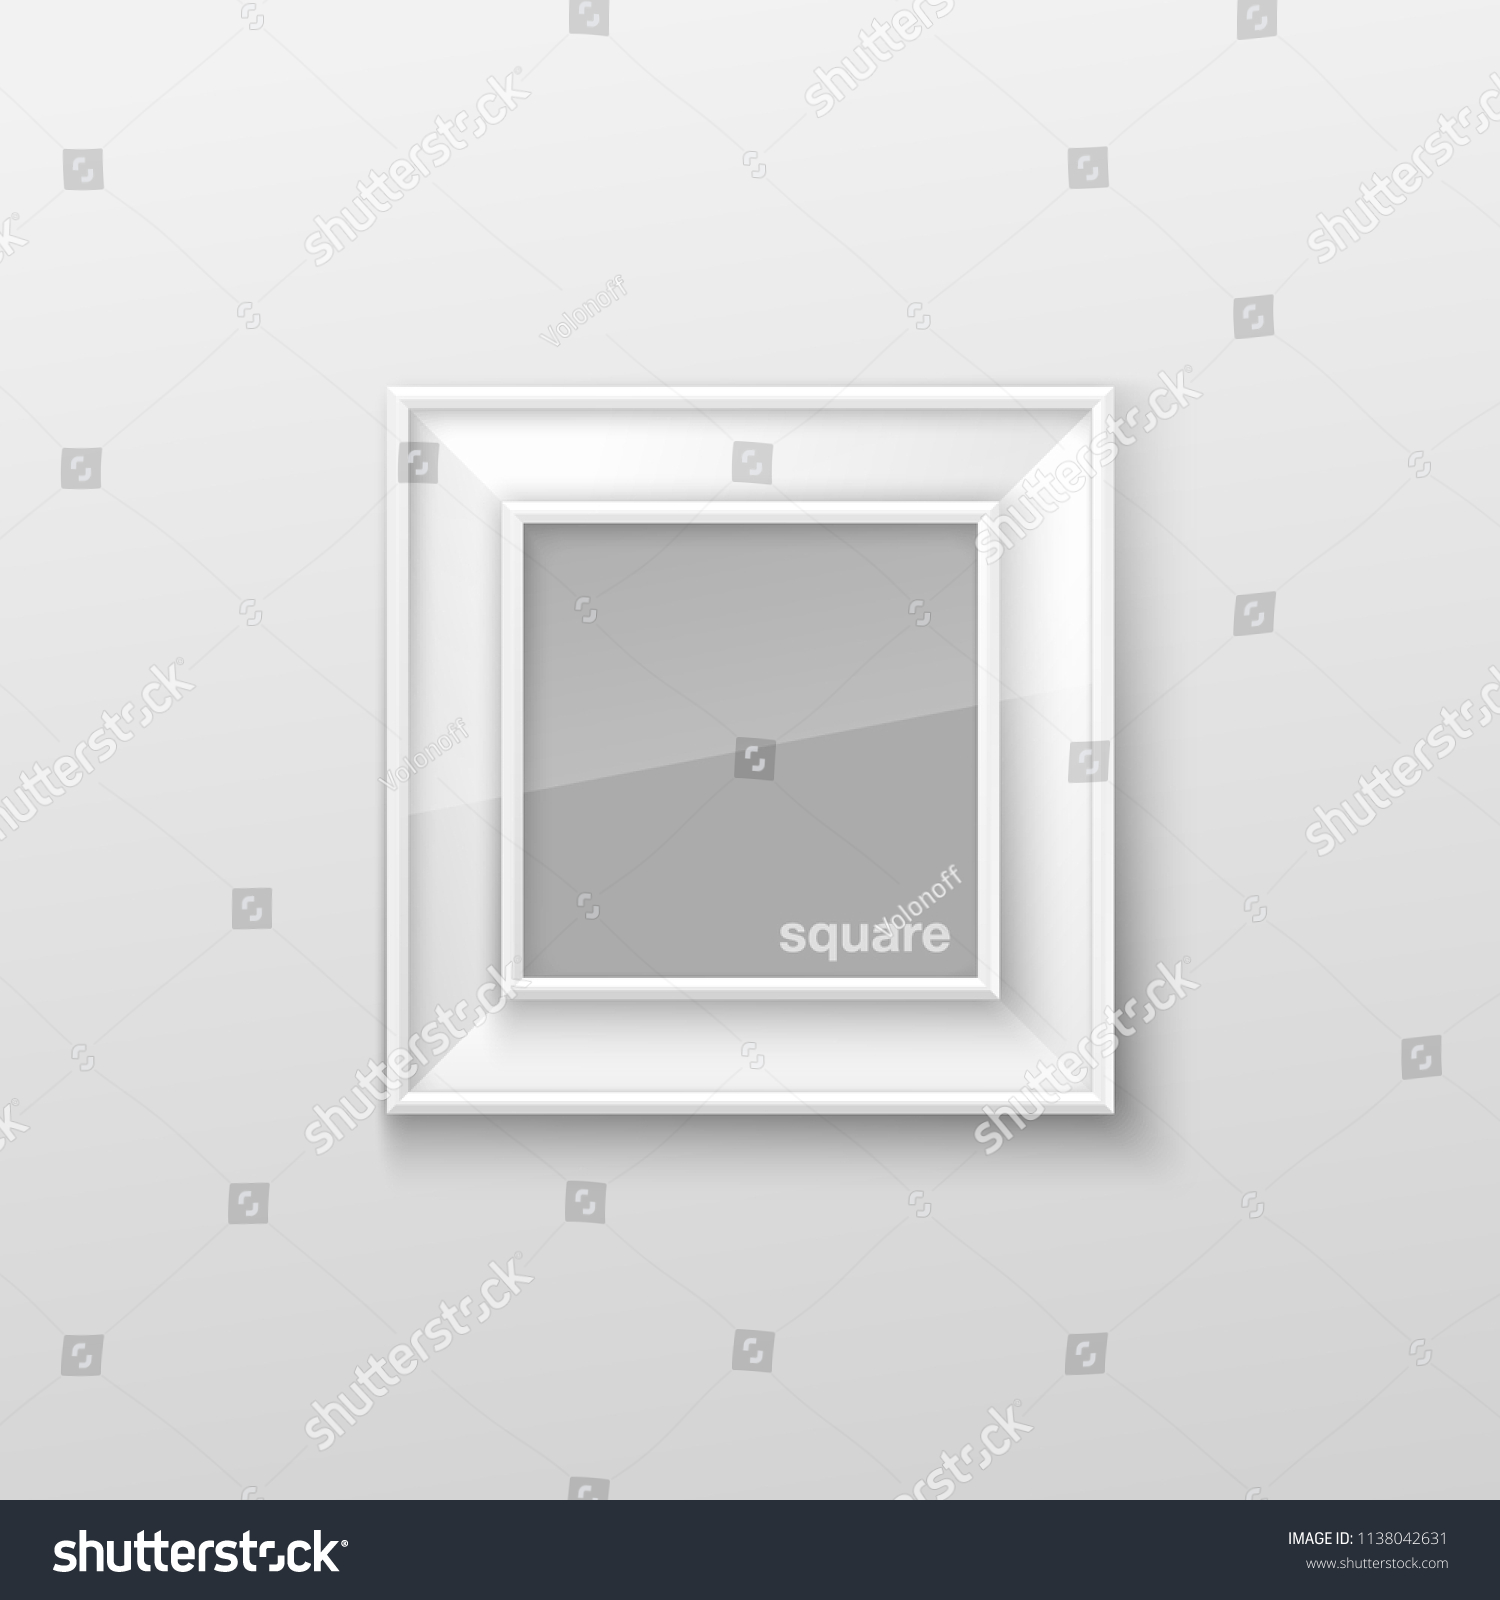 Realistic Square White Blank Picture Frame Stock Vector (Royalty ...